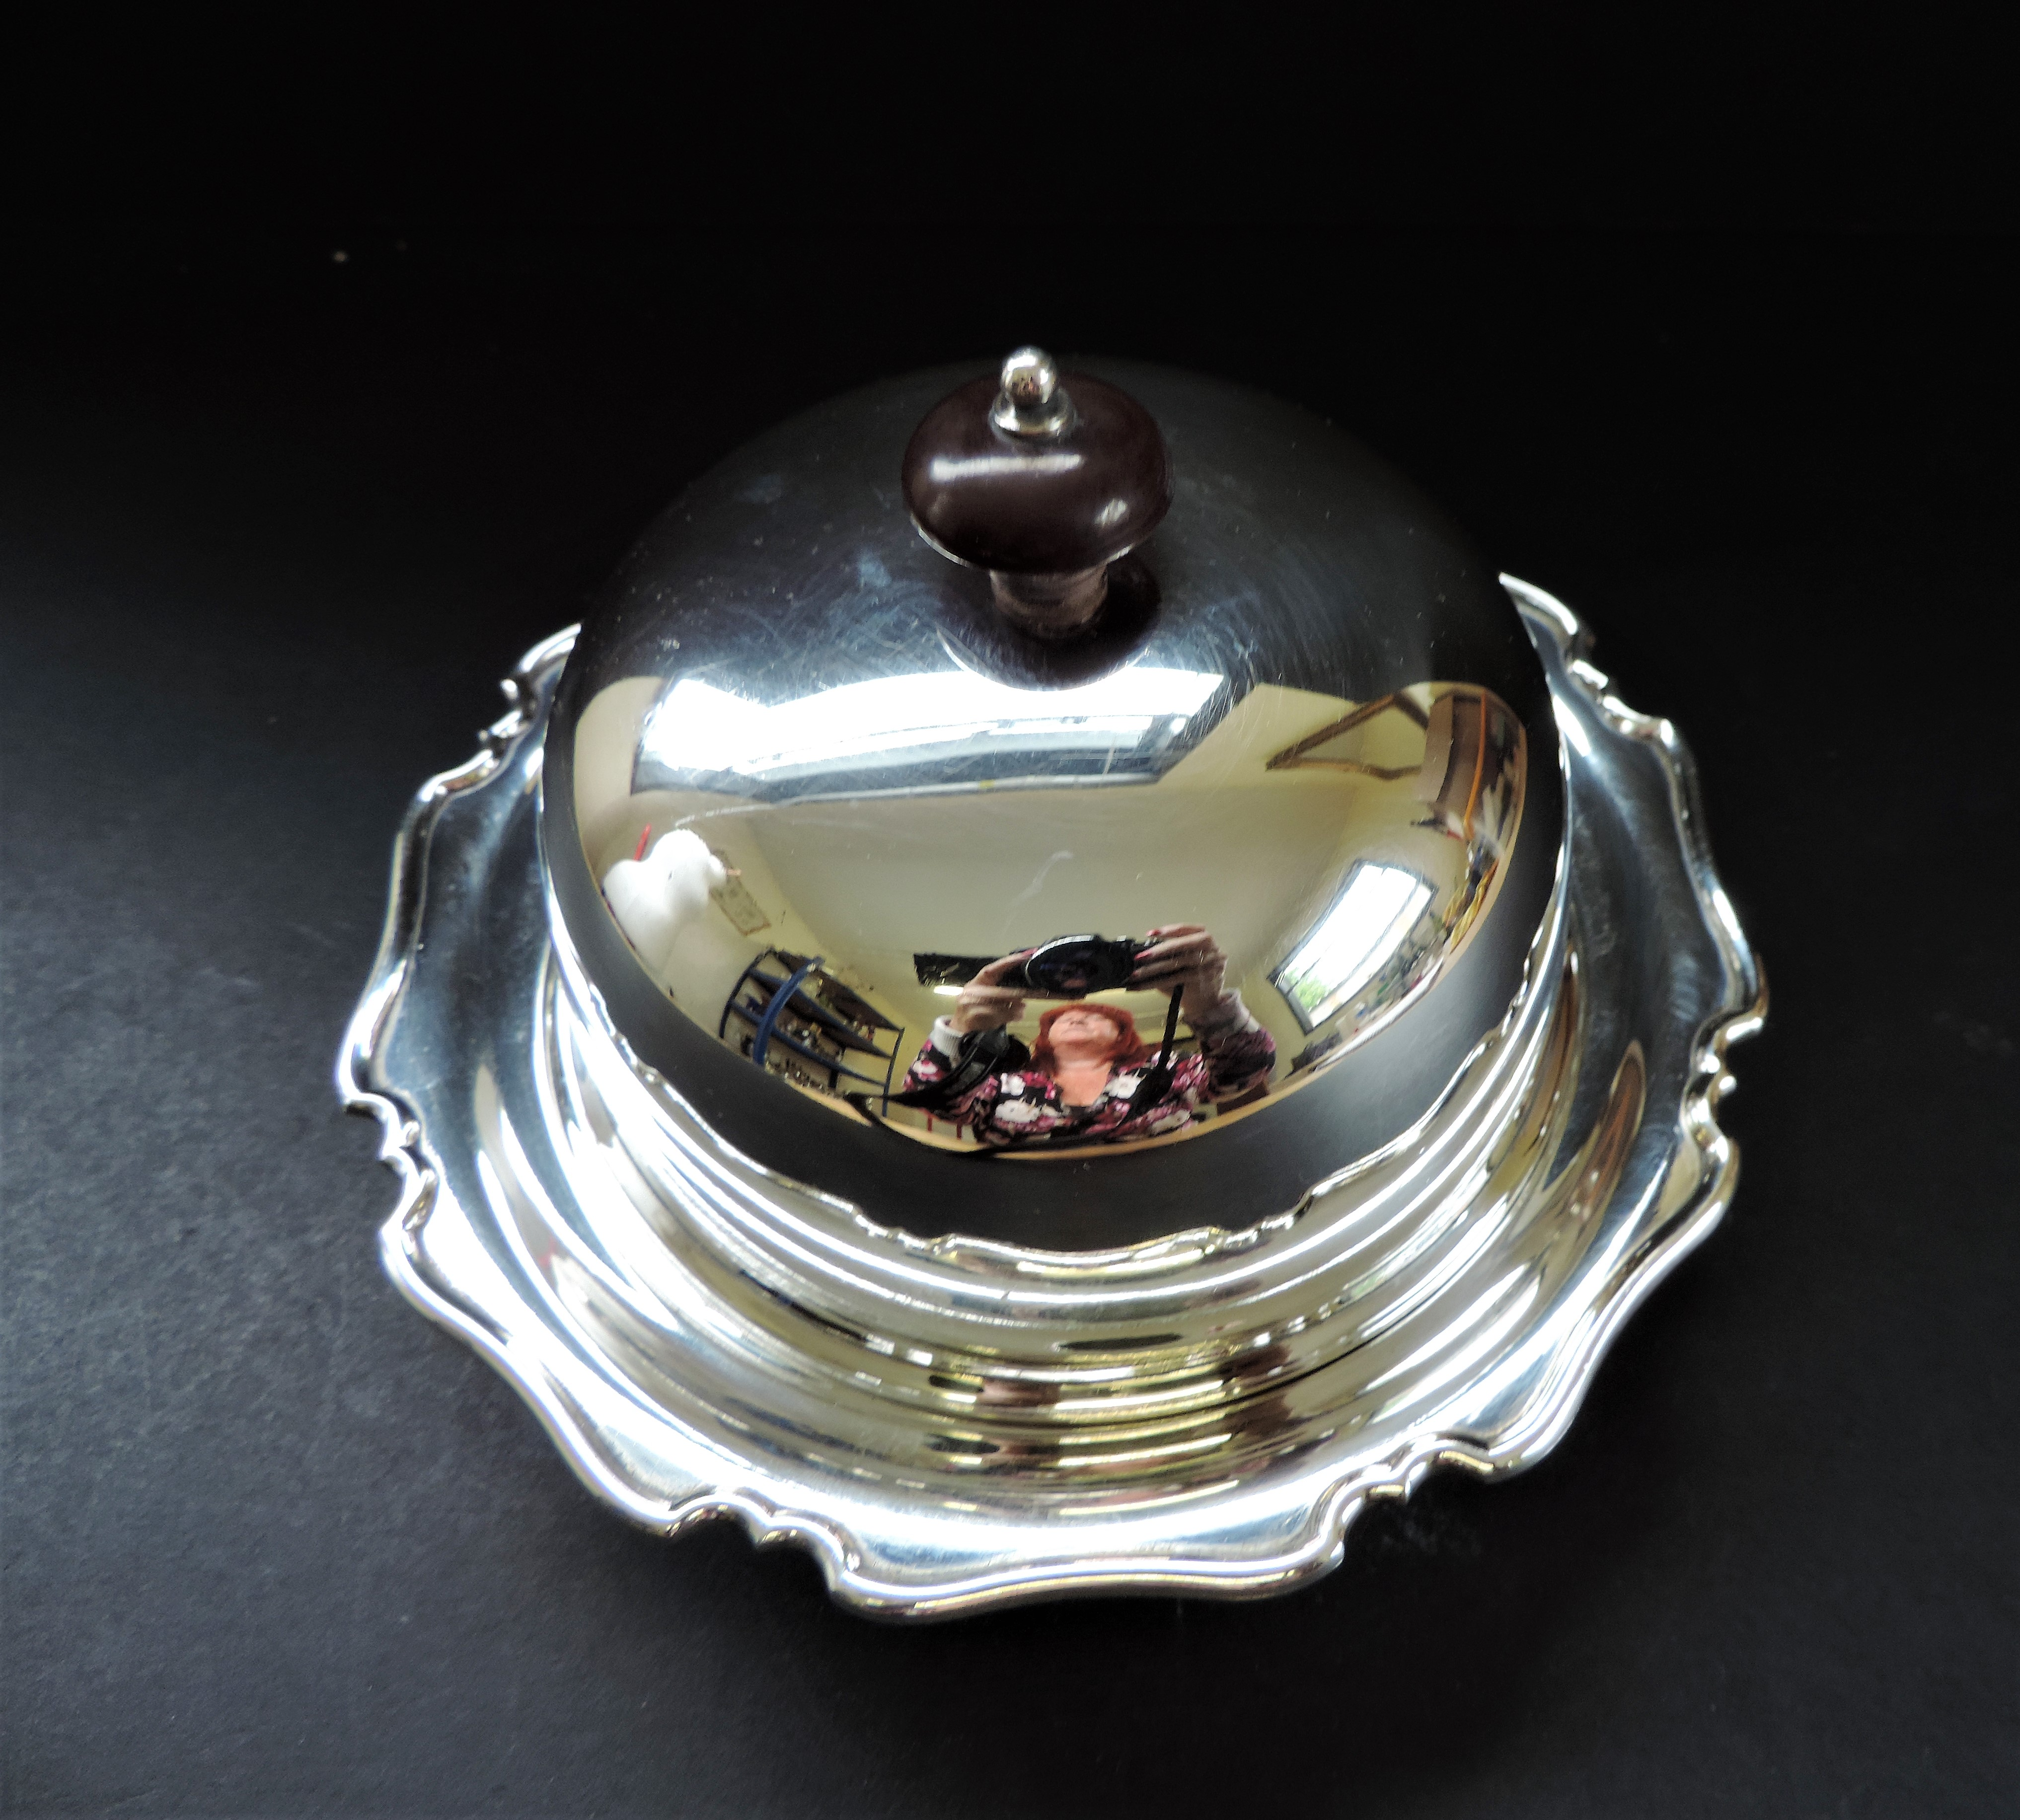 Antique Art Nouveau Silver Plated Muffin Dish/Warmer - Image 5 of 7